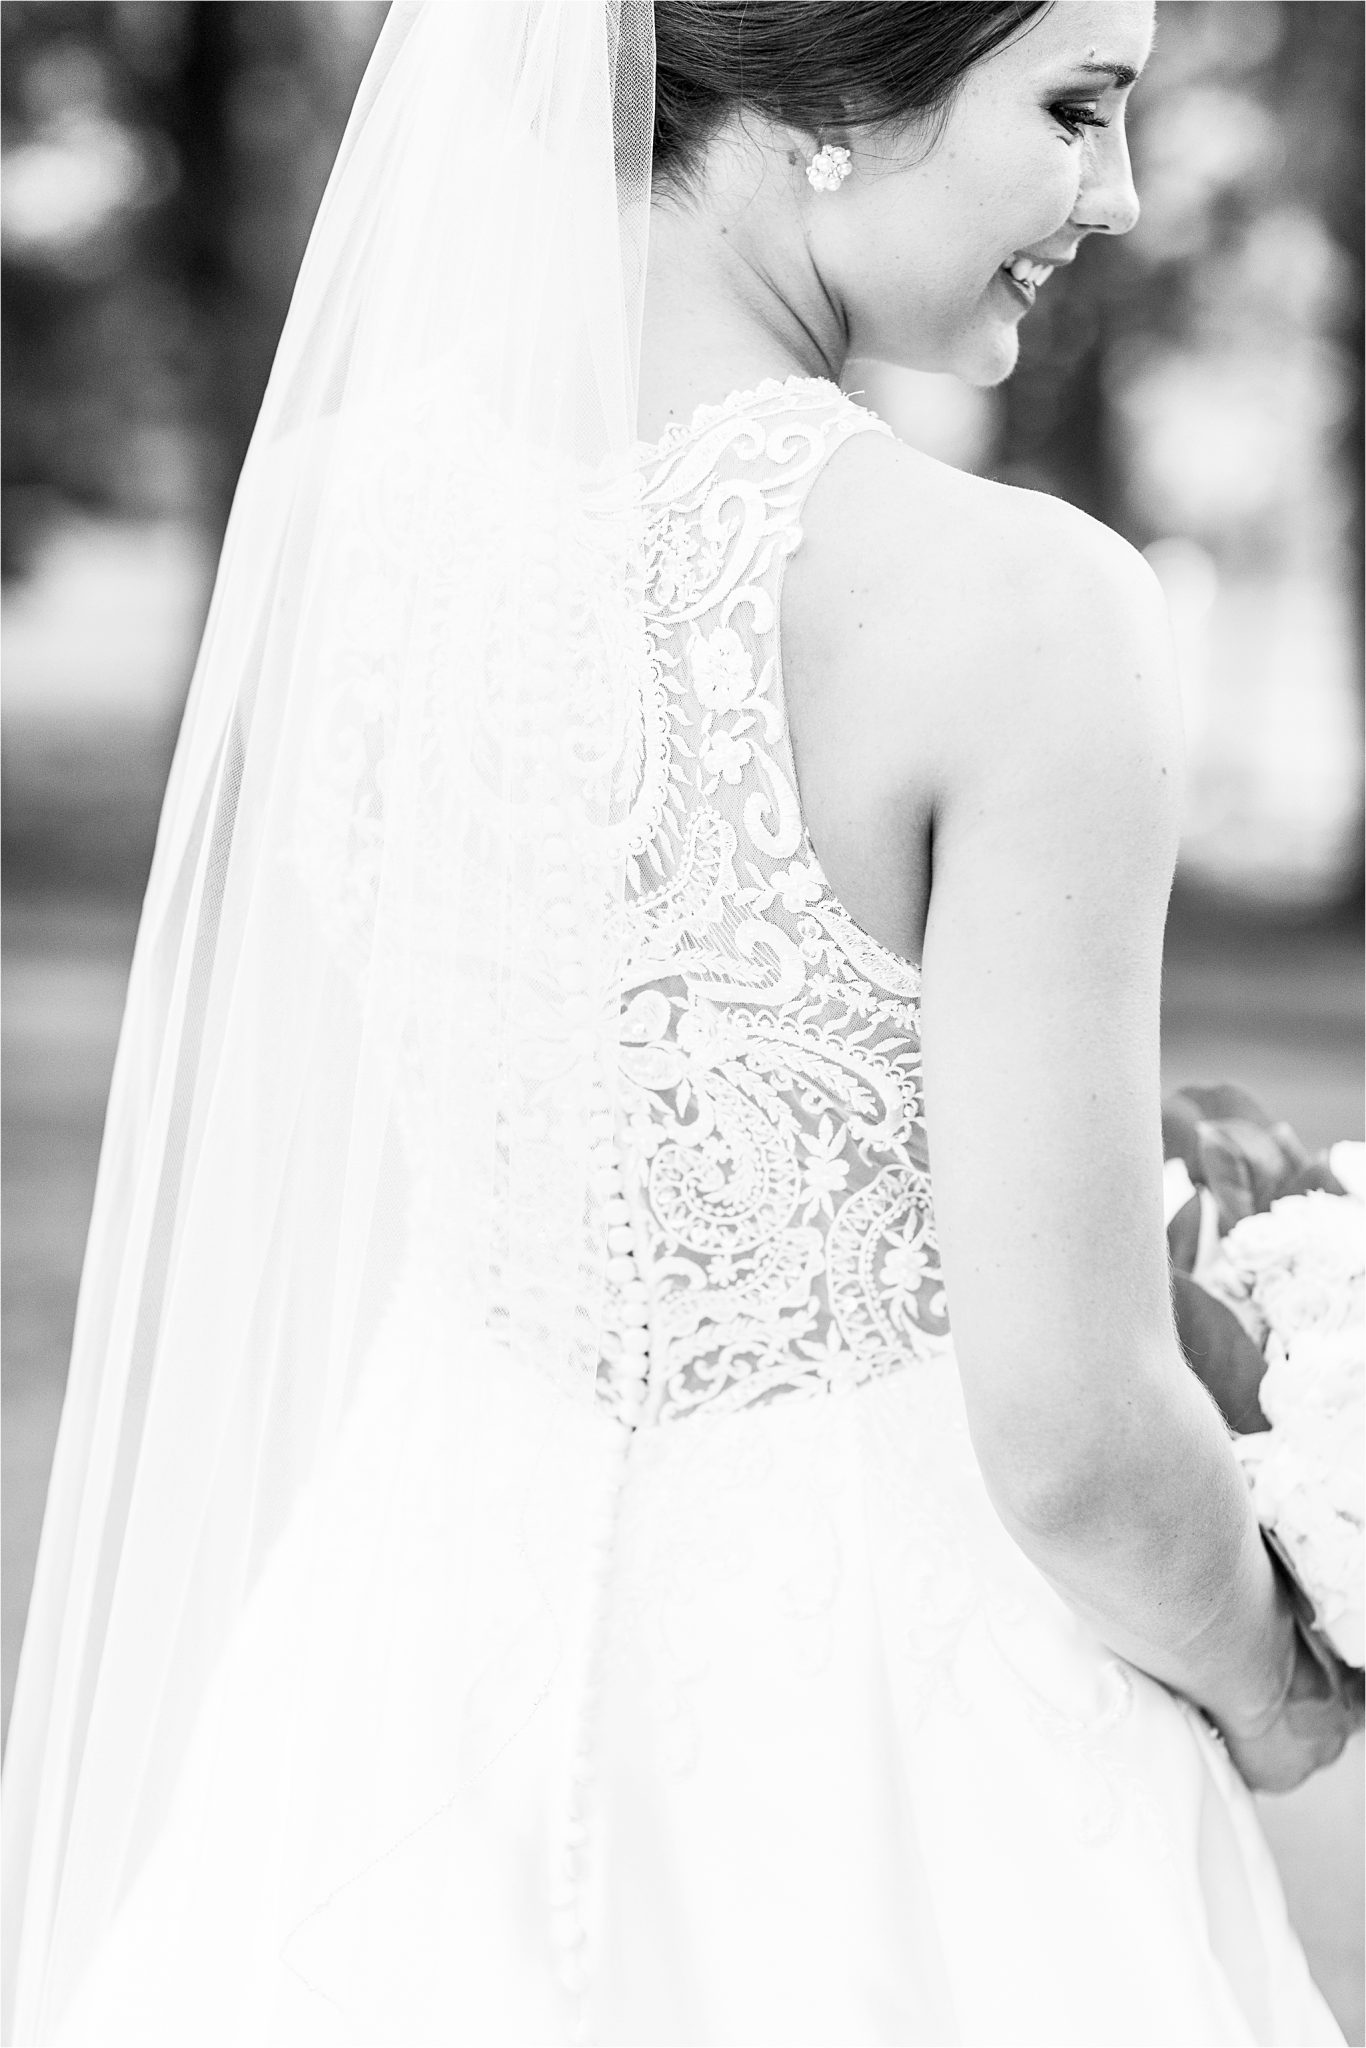 Sonnet House, Birmingham Alabama Wedding Photographer, Wedding dress details, Bridal portrait